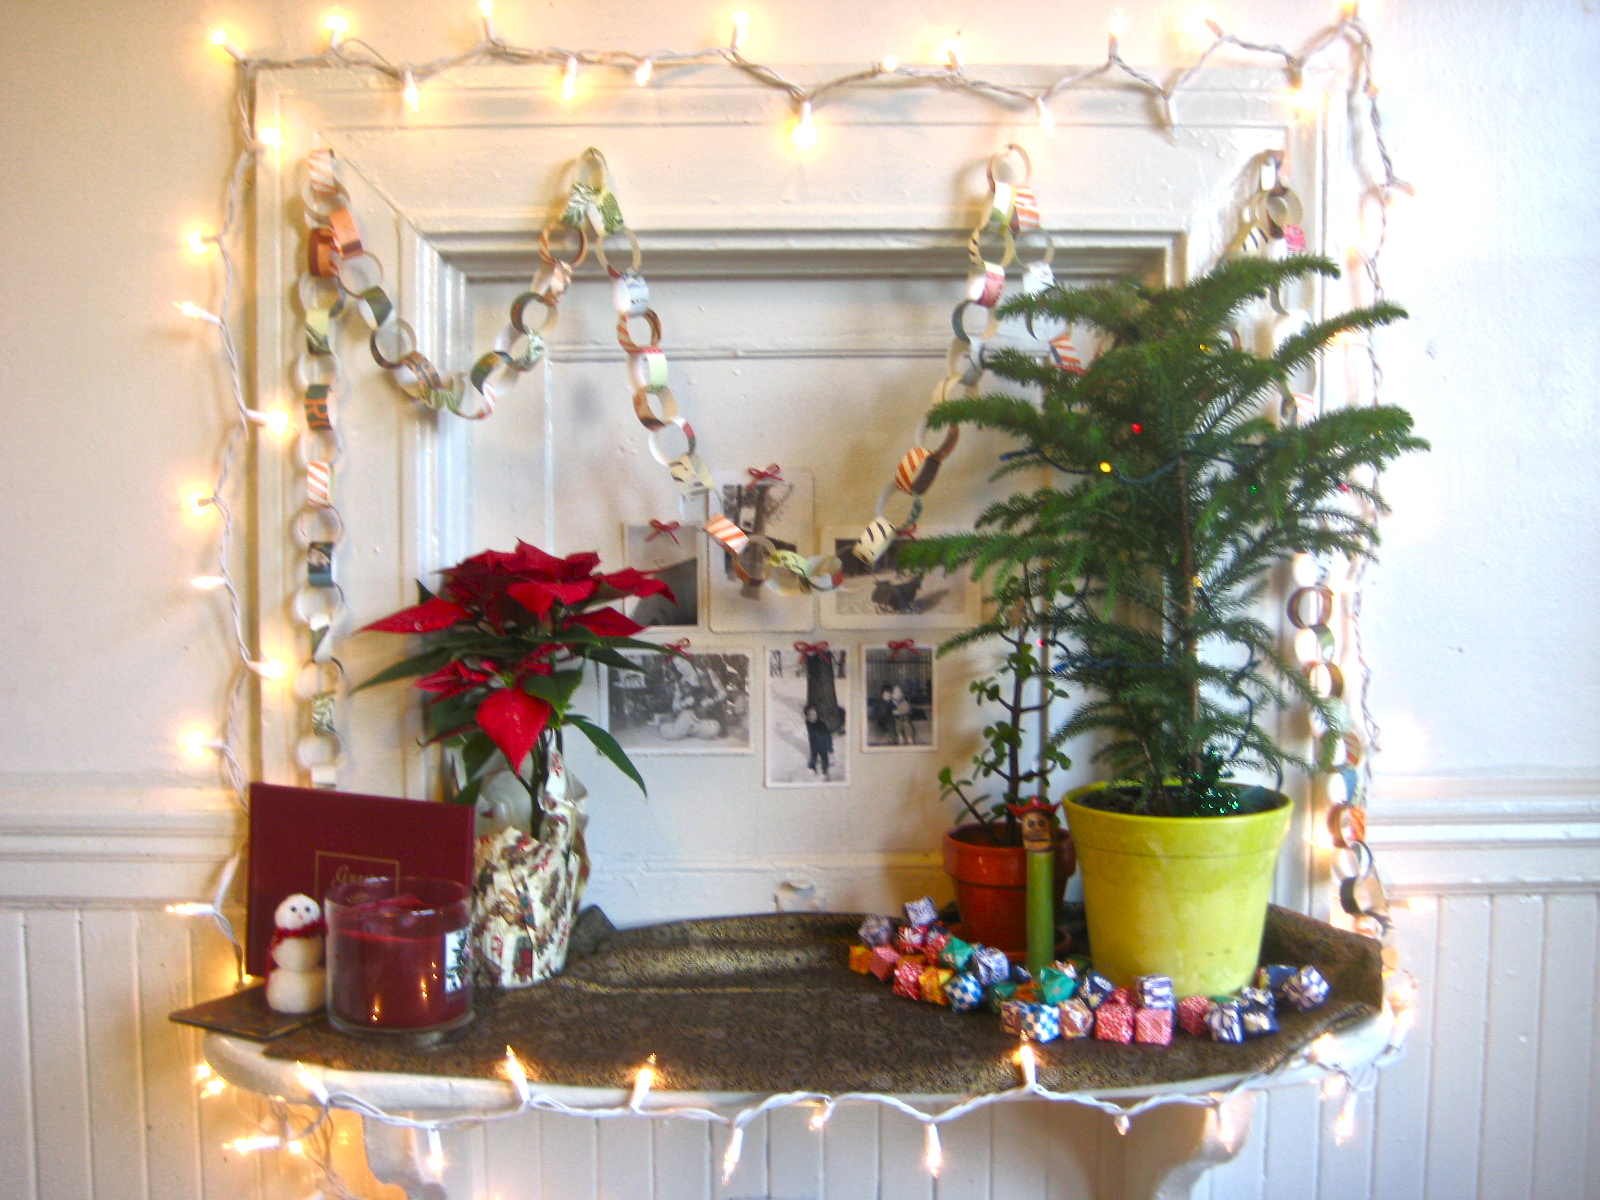 merry christmas decorating small spaces - How To Decorate Small Room For Christmas